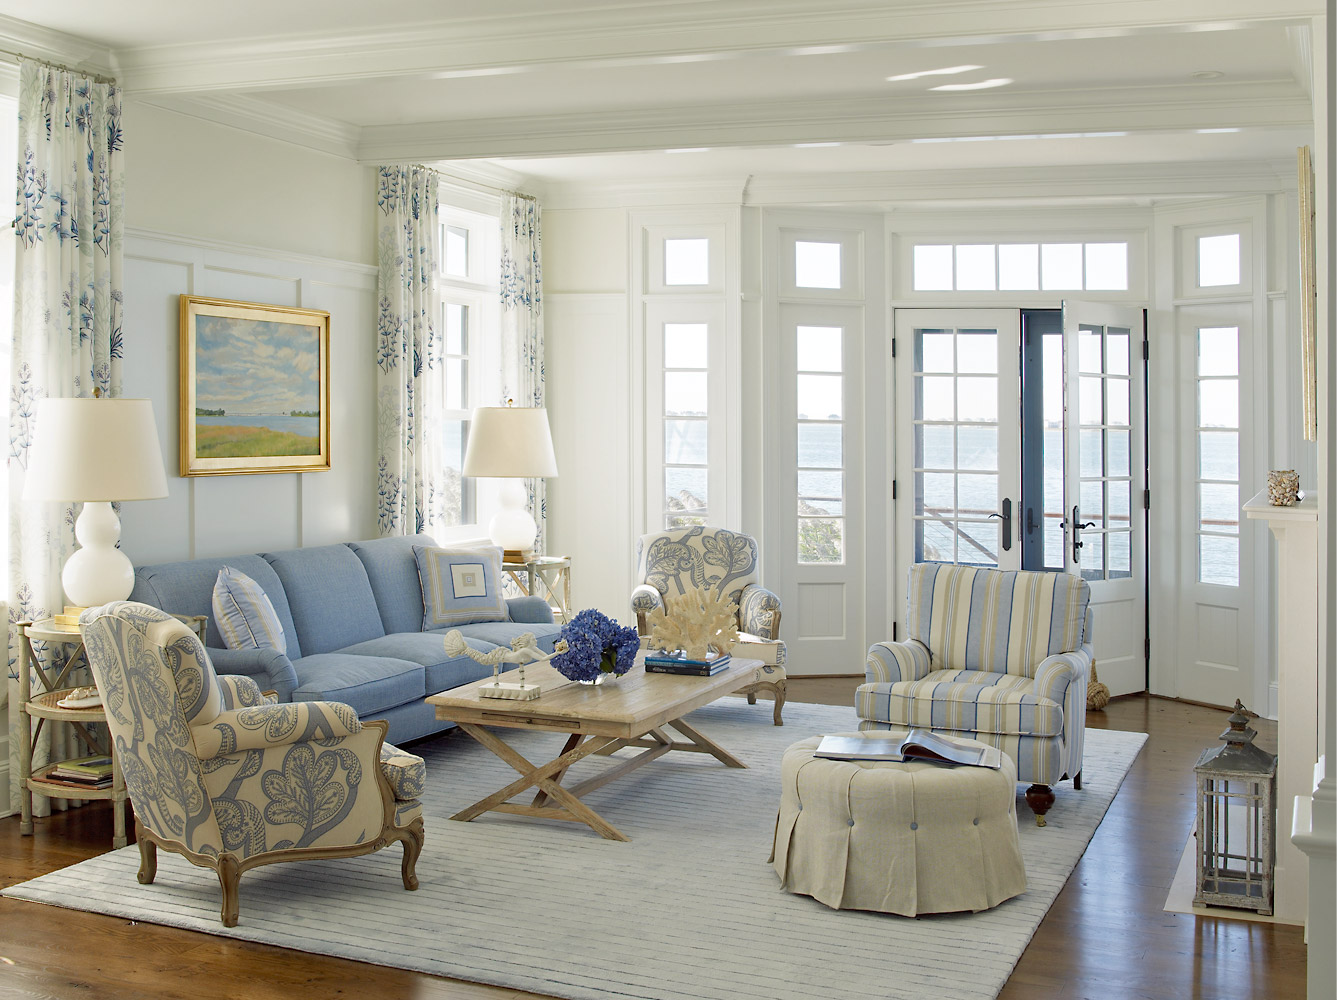 Decor inspiration nautical house on the bay cool chic for Summer beach house decor